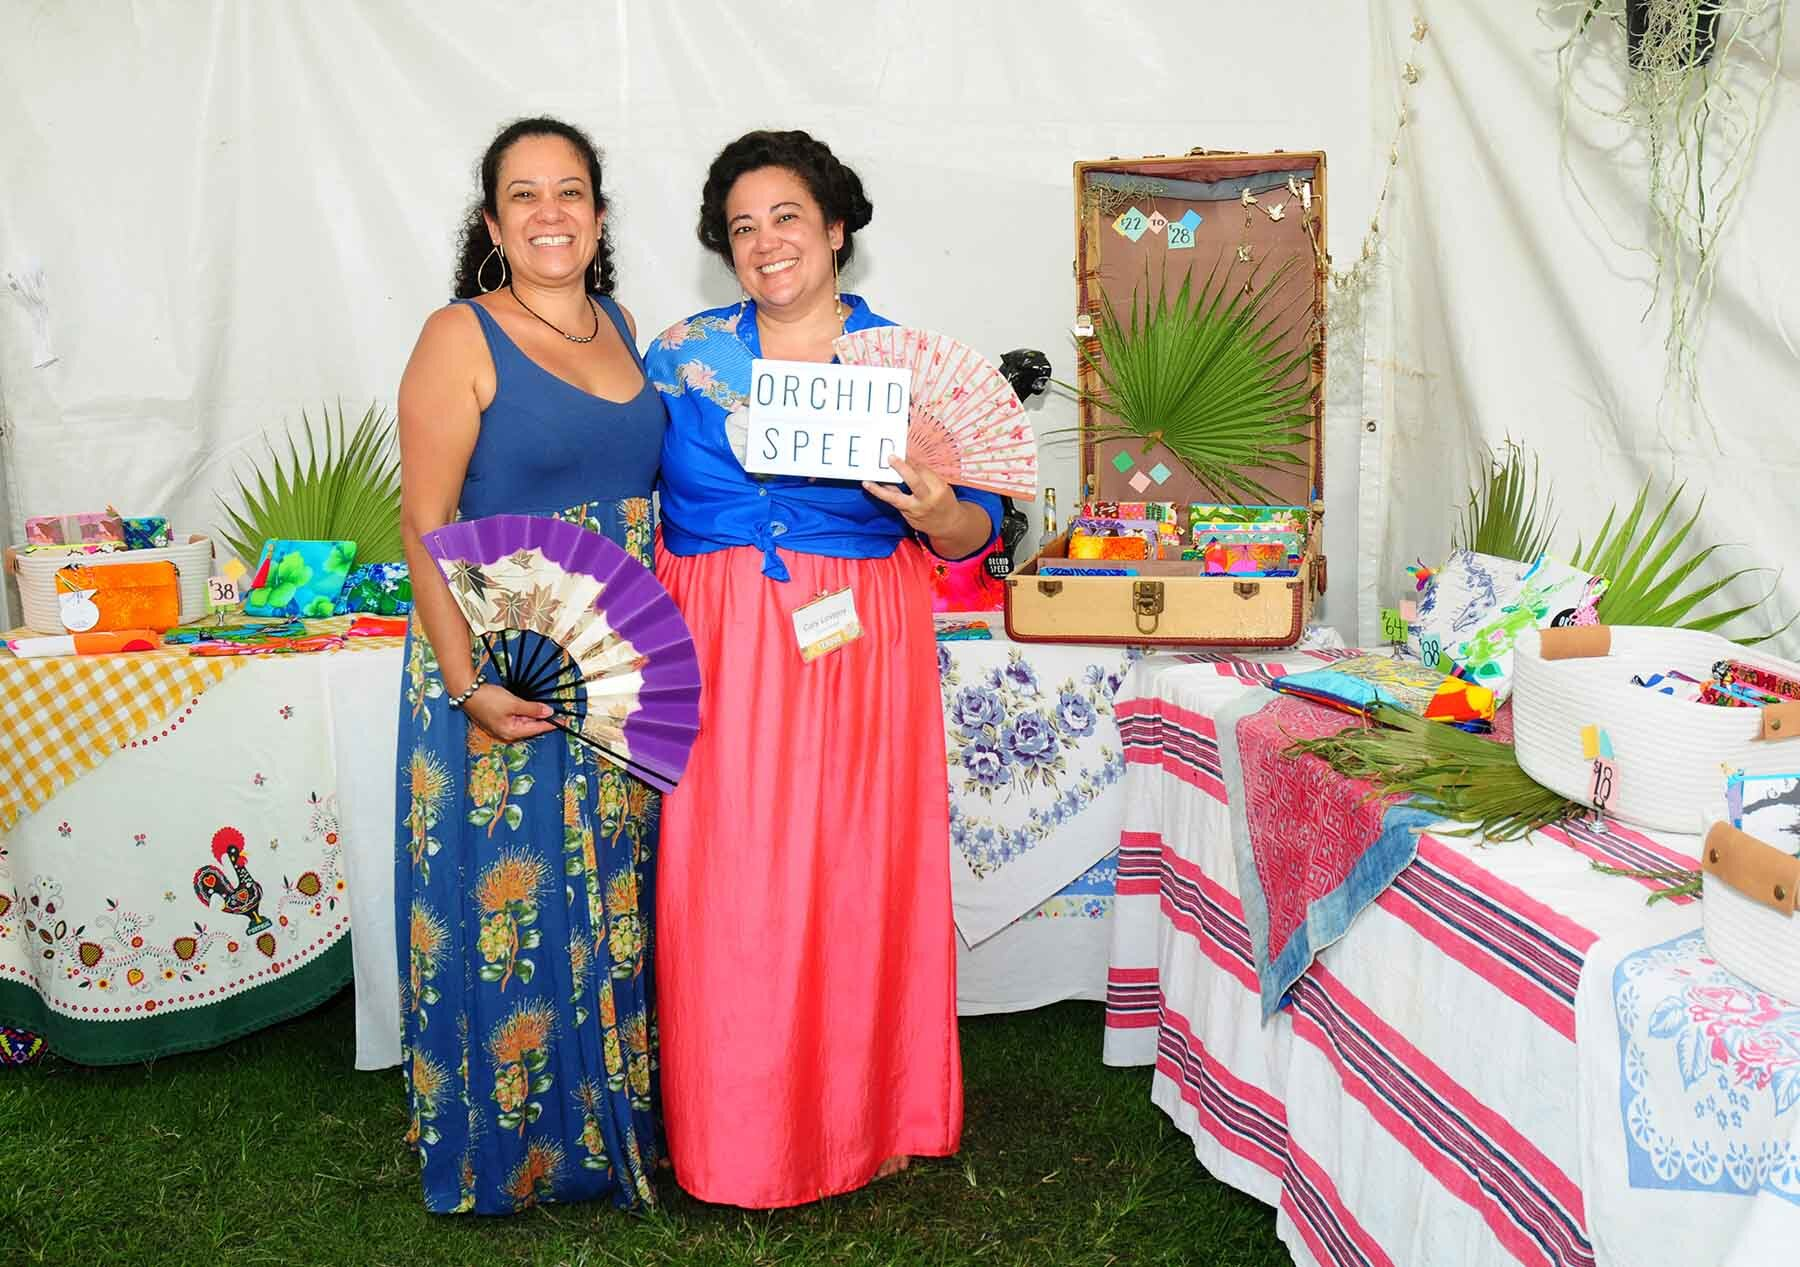 Cory Lovejoy, owner of Orchid Speed from Lanai, will offer her zipper bags, metal frame clutches and totes made from vintage Hawaii and found fabrics.